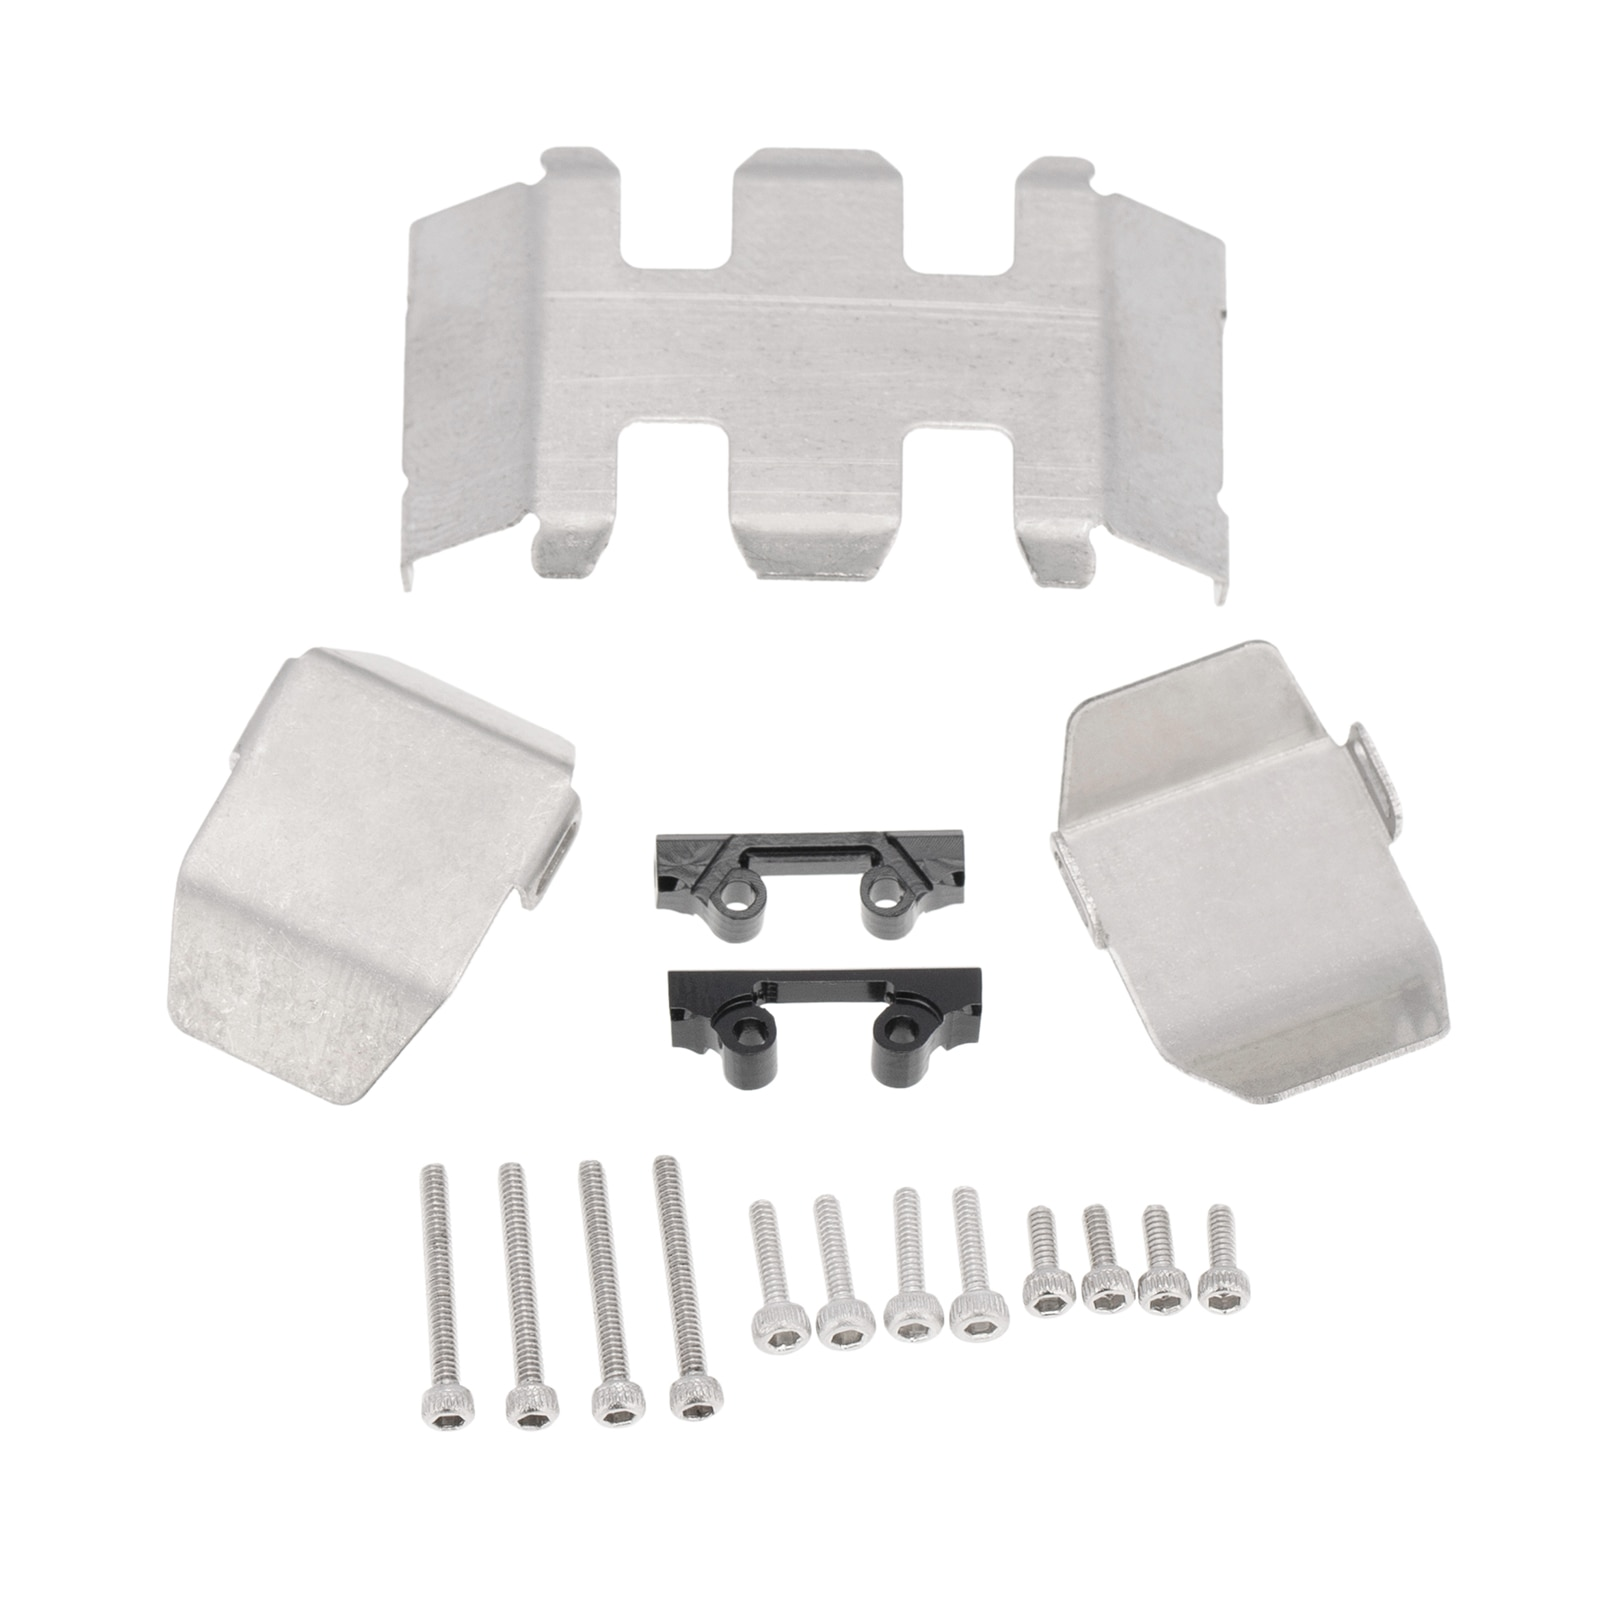 RC Chassis Armors Set, Stainless Steel Protection Skid Plate for